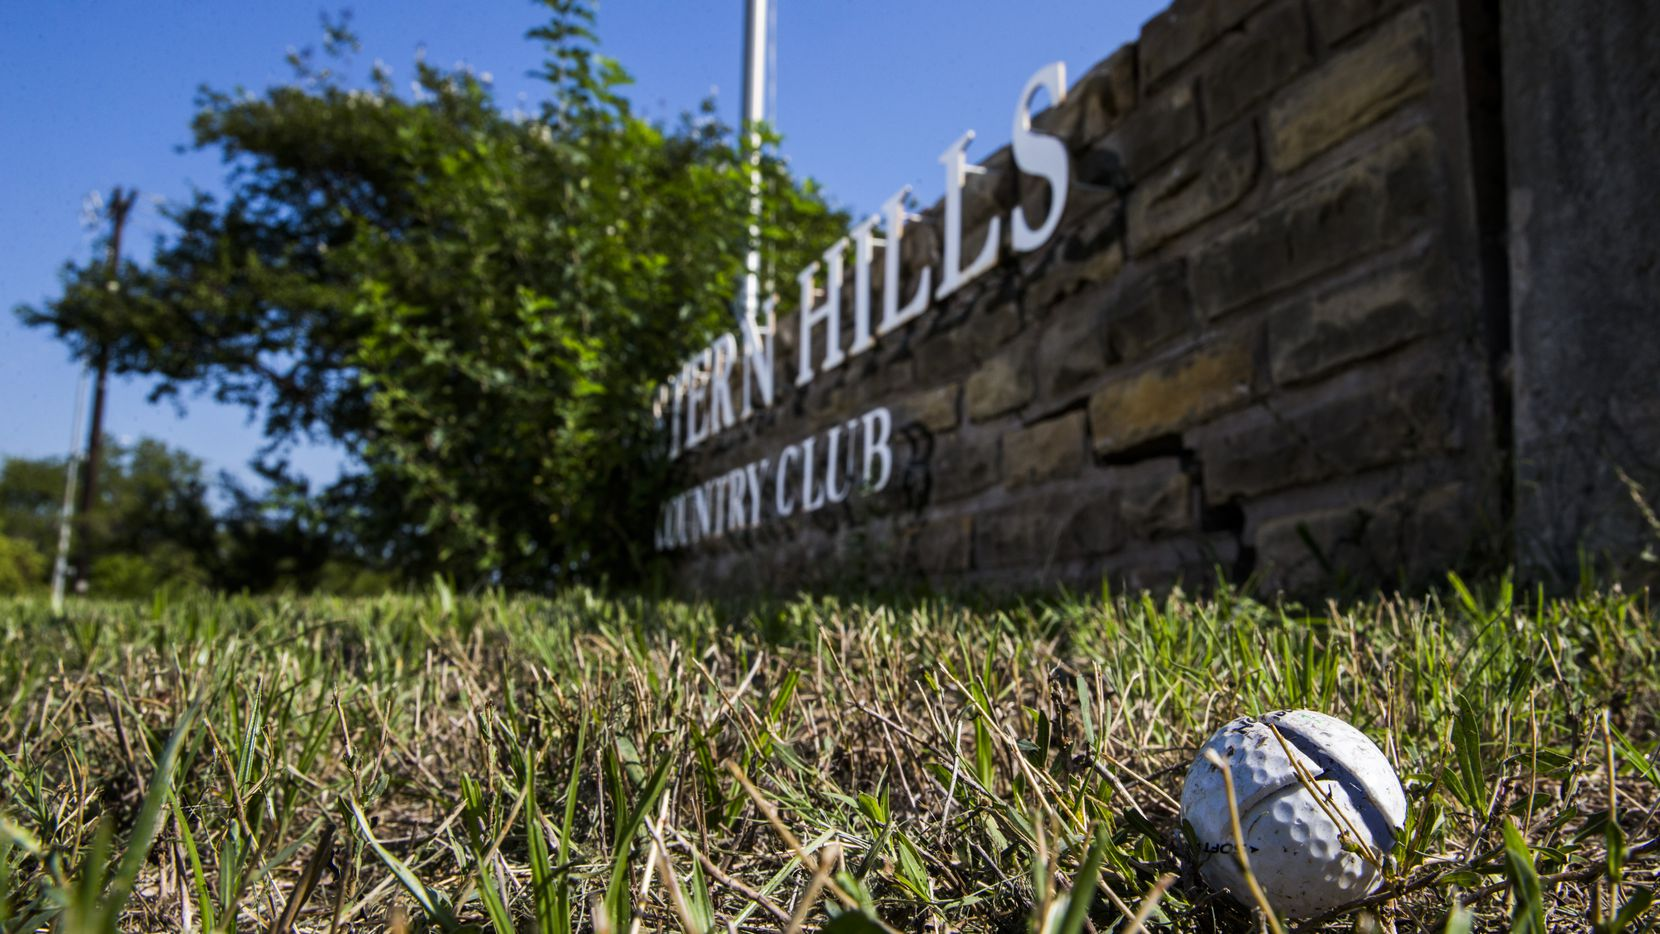 Garland's Eastern Hills Country Club closed in 2014.